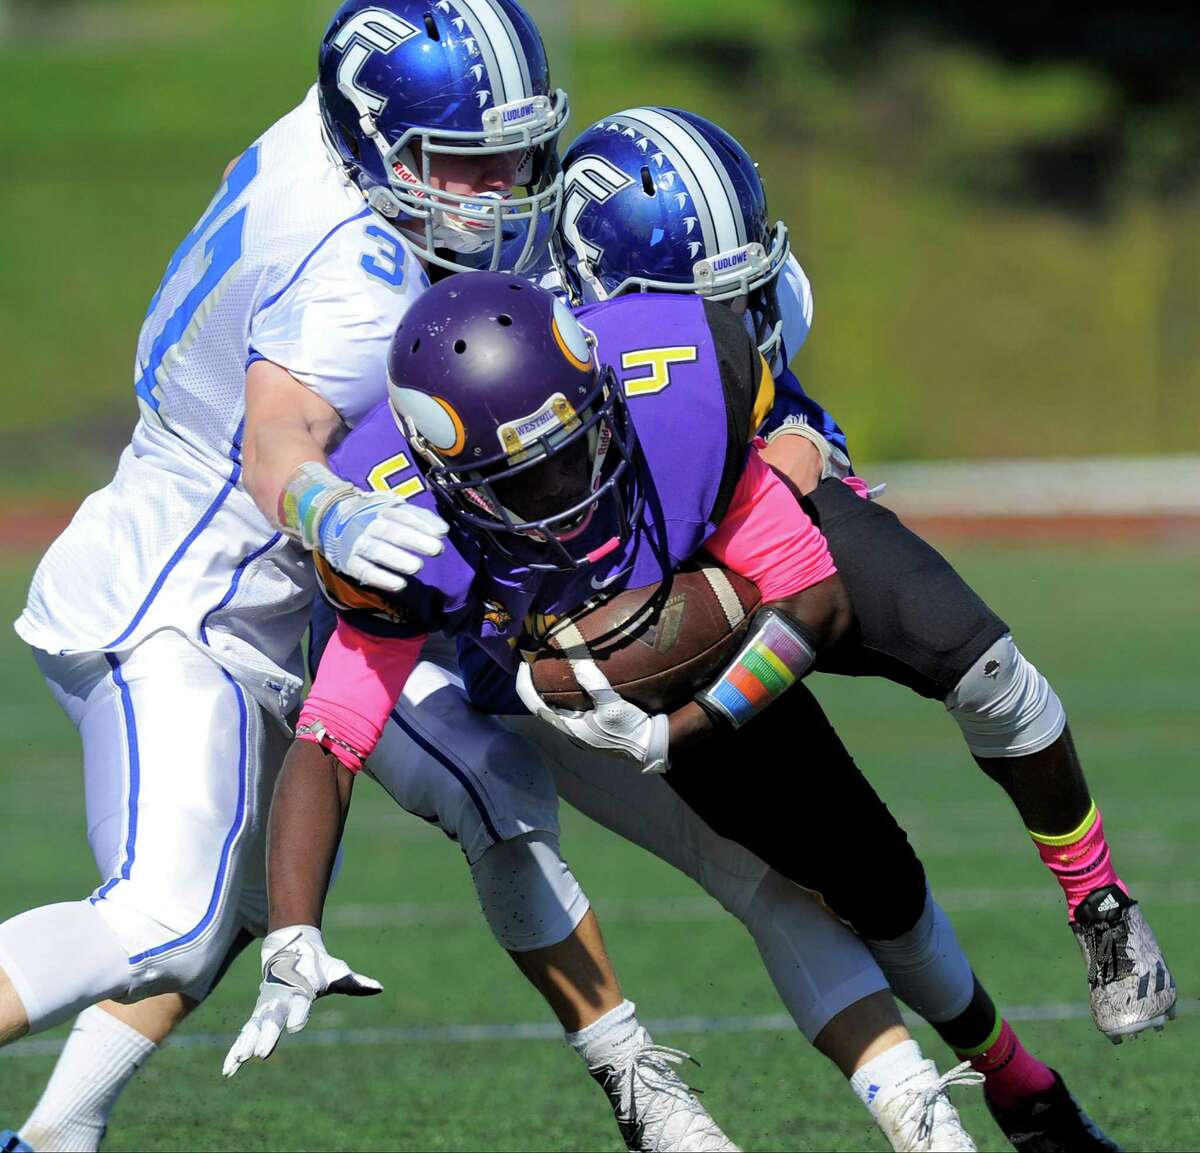 Westhill Tarik Rivers is stopped by Fairfield Ludlowe defenders in a FCIAC football game at Westhill High School in Stamford on Saturday, Oct. 15, 2016. Westhill defeated Fairfield Ludlowe 21-0.